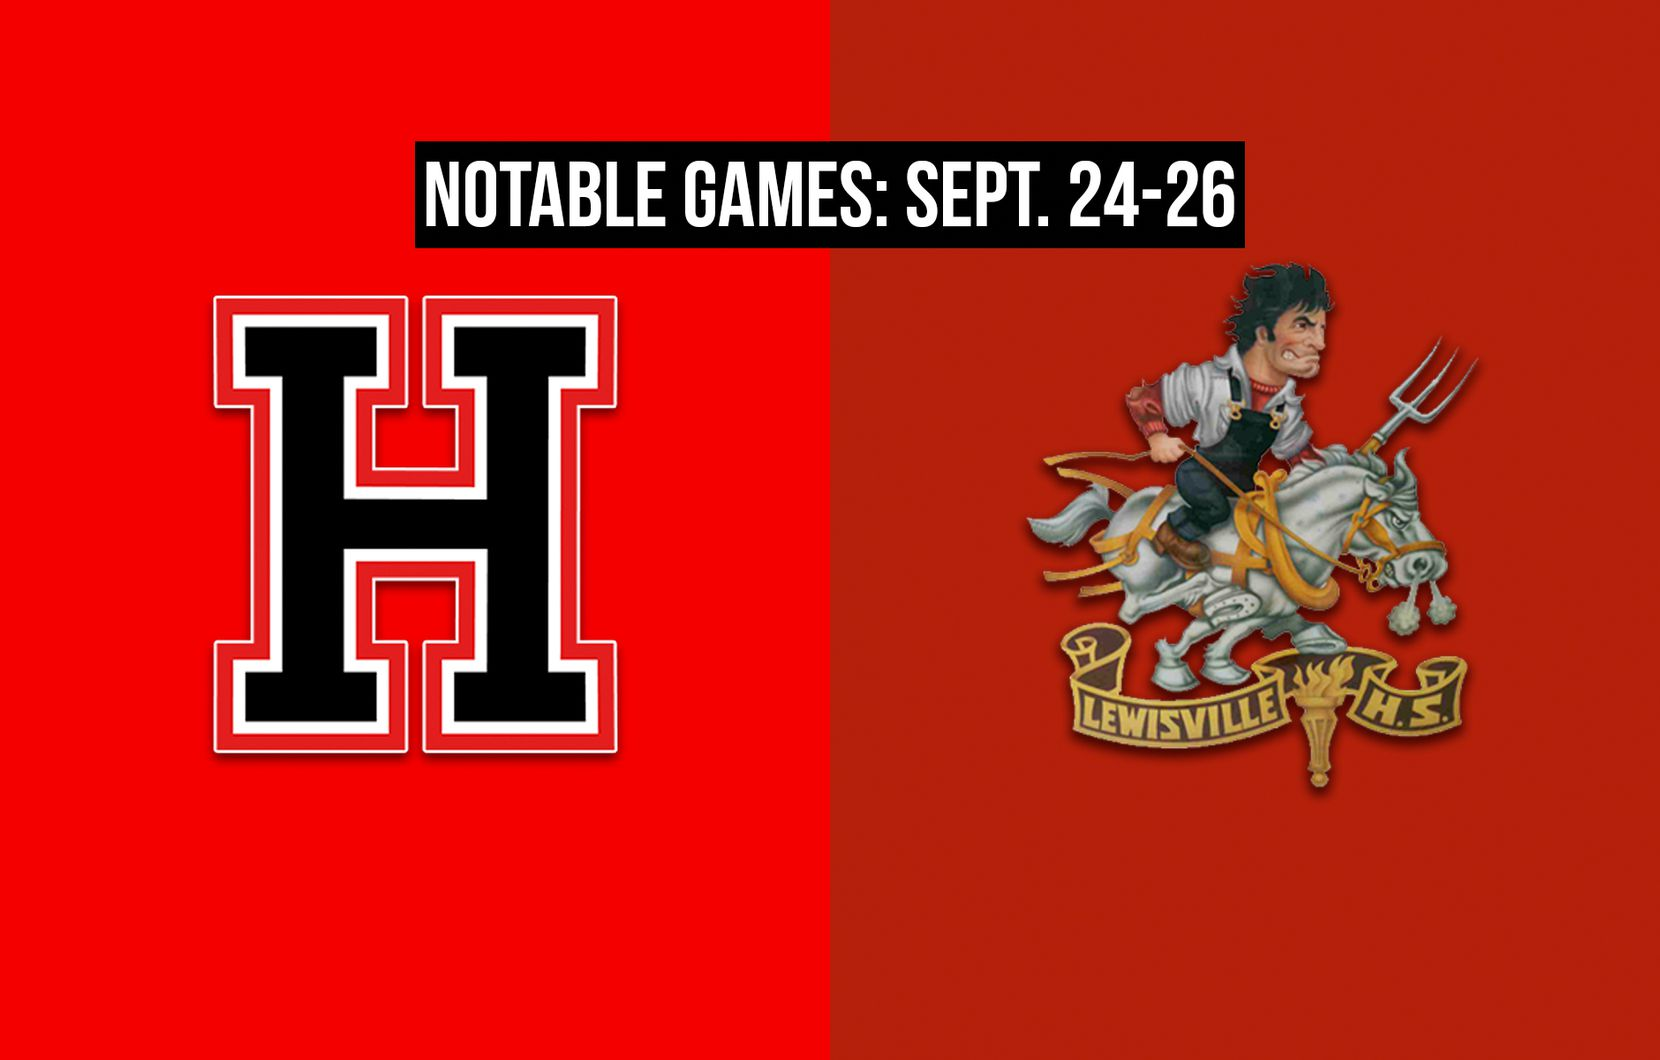 Notable games for the week of Sept. 24-26 of the 2020 season: Rockwall-Heath vs. Lewisville.